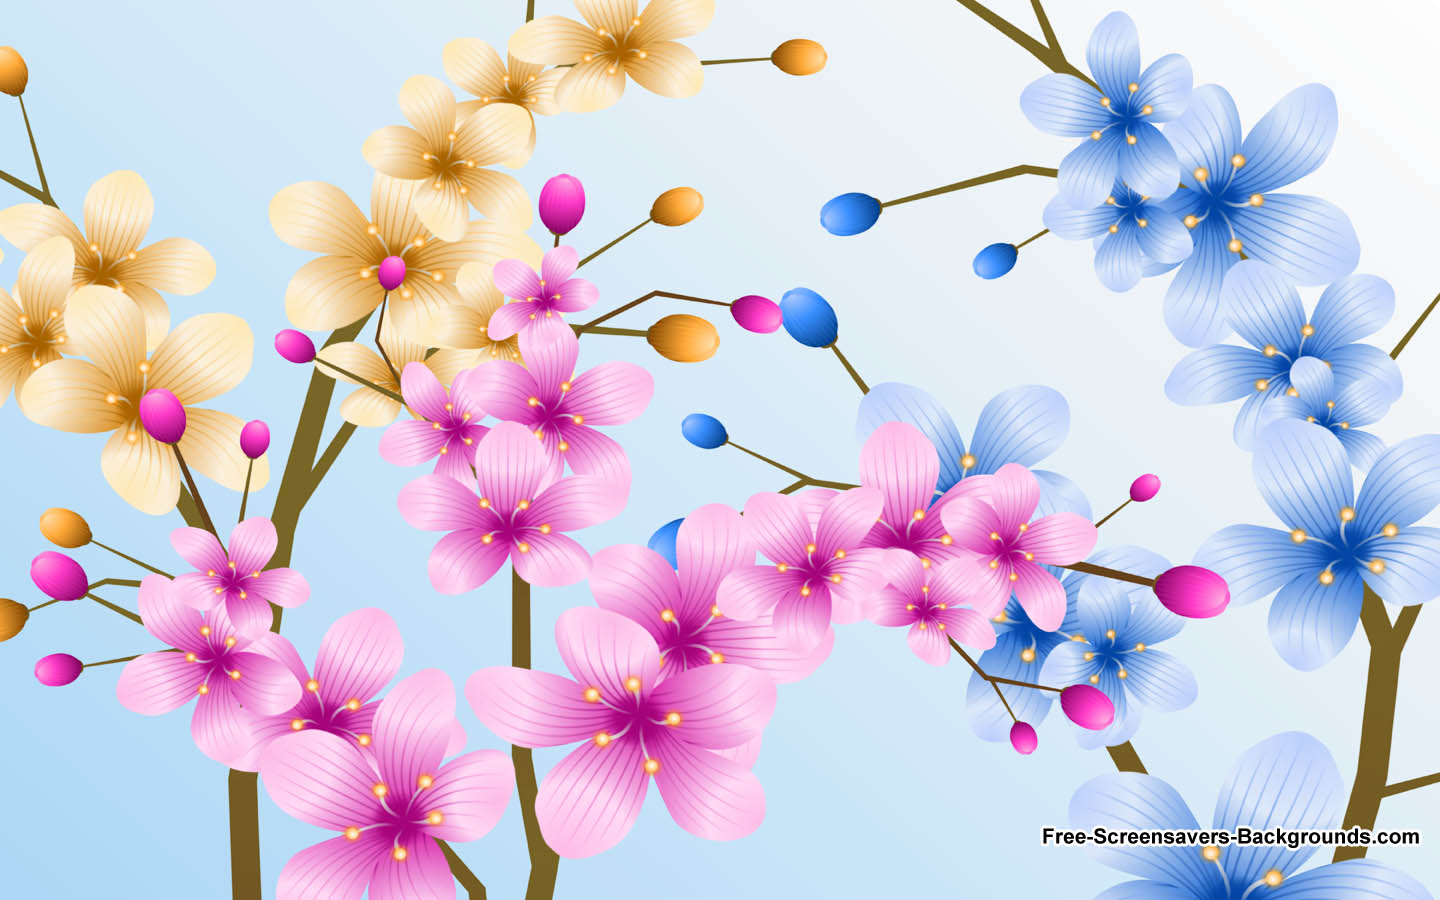 Mixed Flowers in a Pot Wallpaper   Screensavers and Backgrounds 1440x900